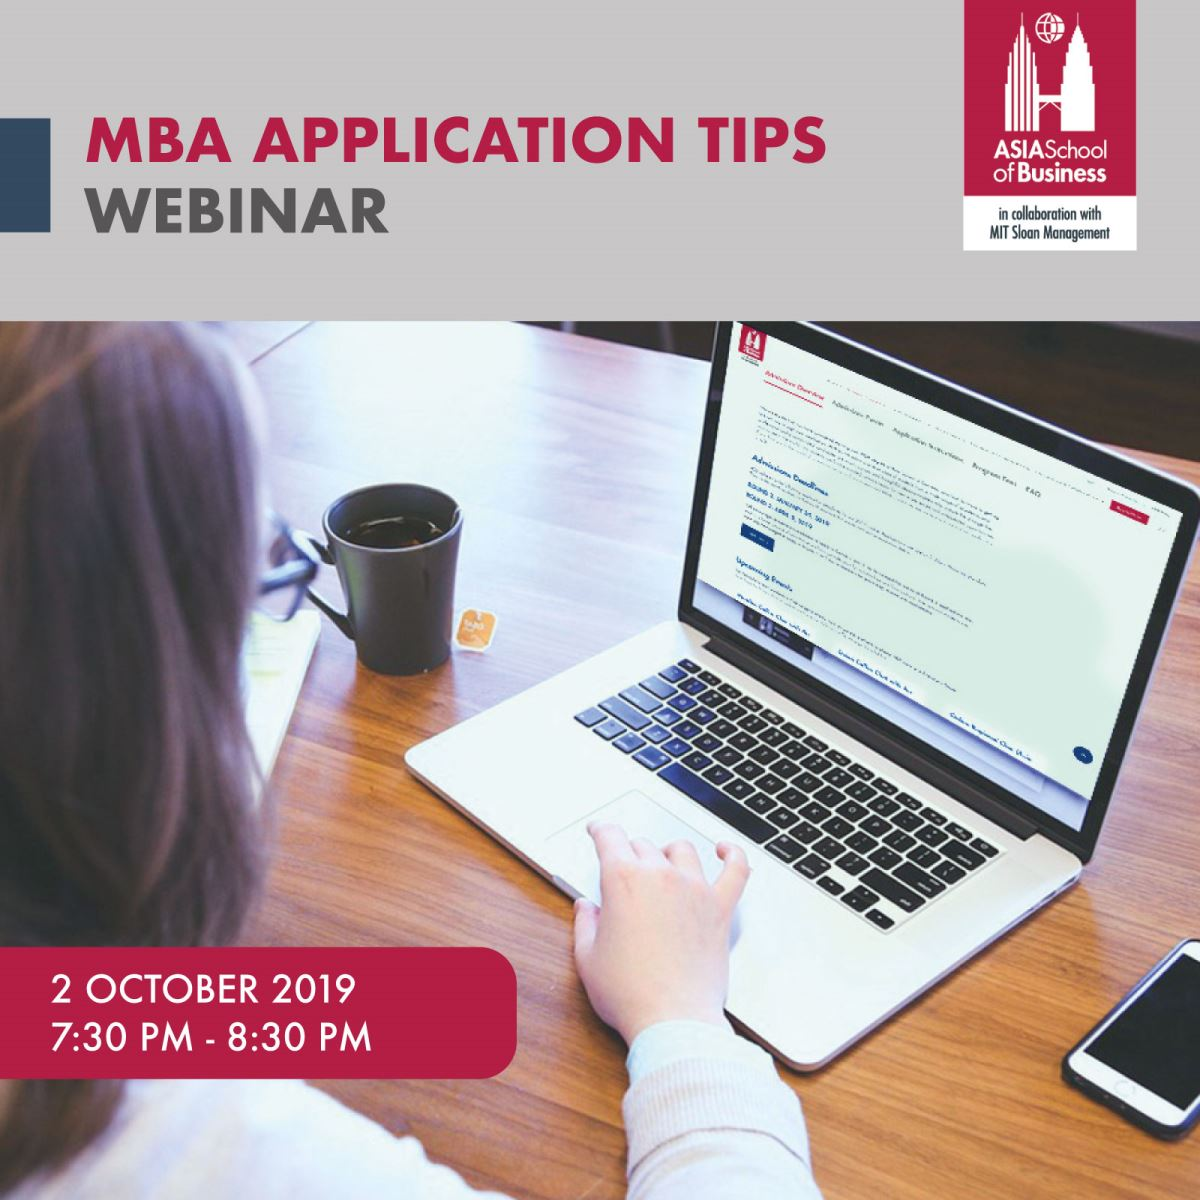 MBA Application Tips Webinar